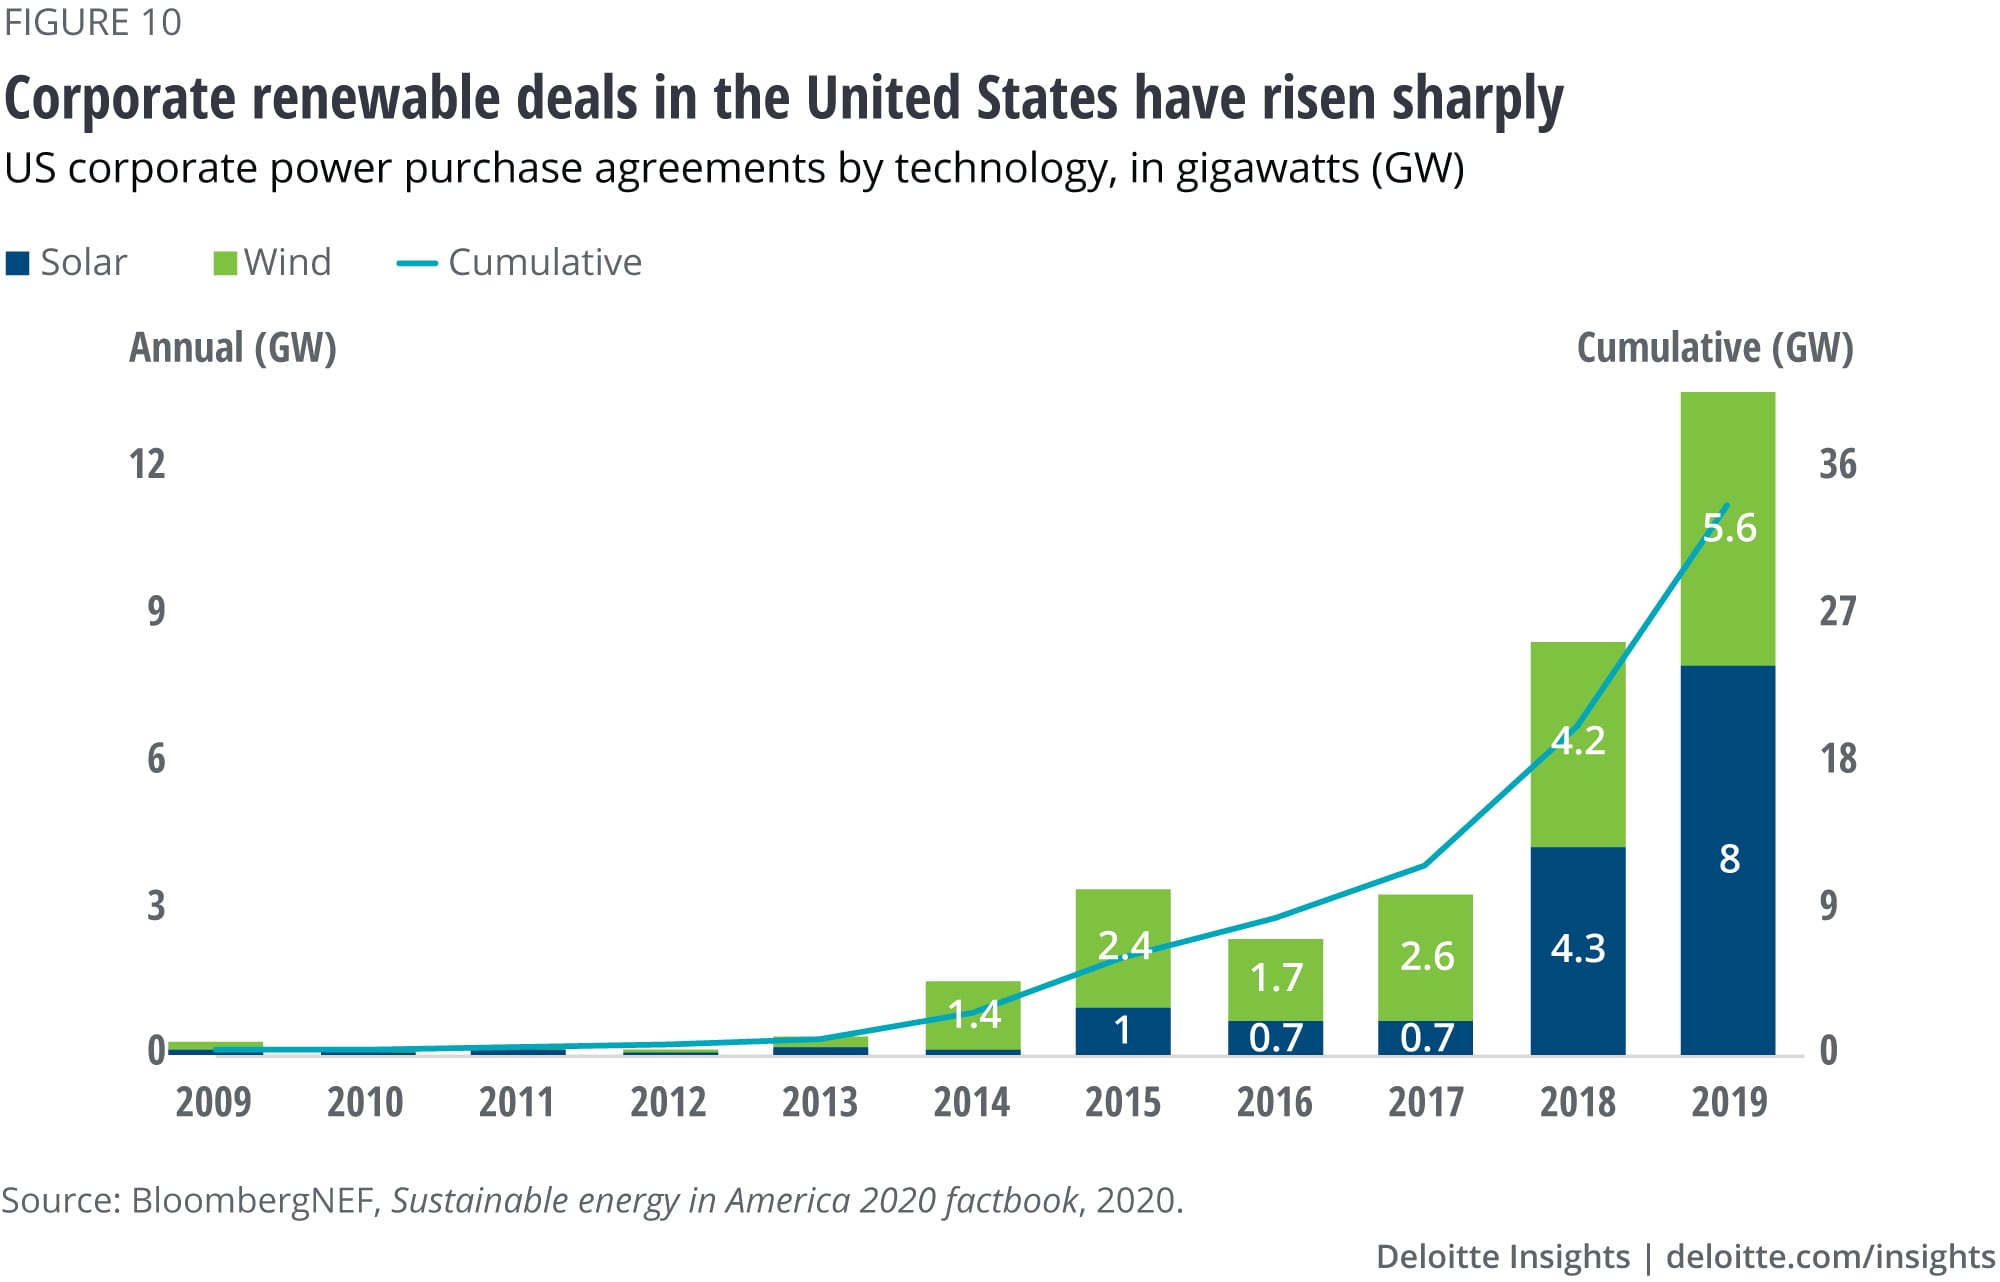 Corporate renewable deals in the United States have risen sharply